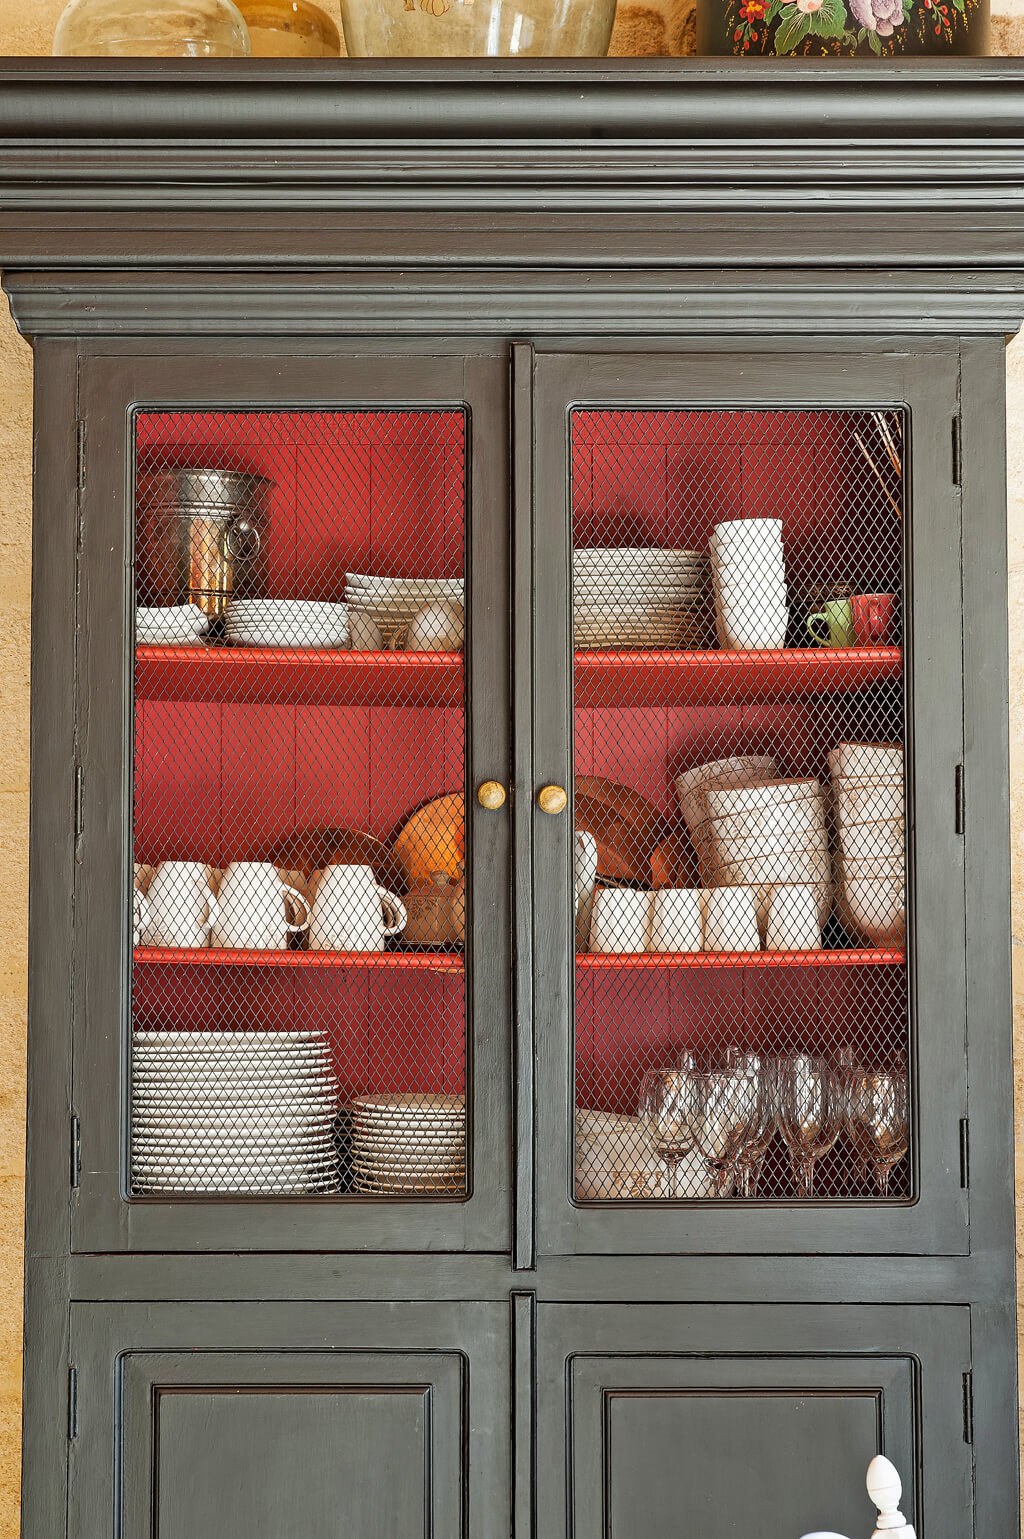 French country antique farmhouse cupboard painted red on inside and charcoal gray on exterior. Located in a beautiful Provence farmhouse offered for stays by Haven In.